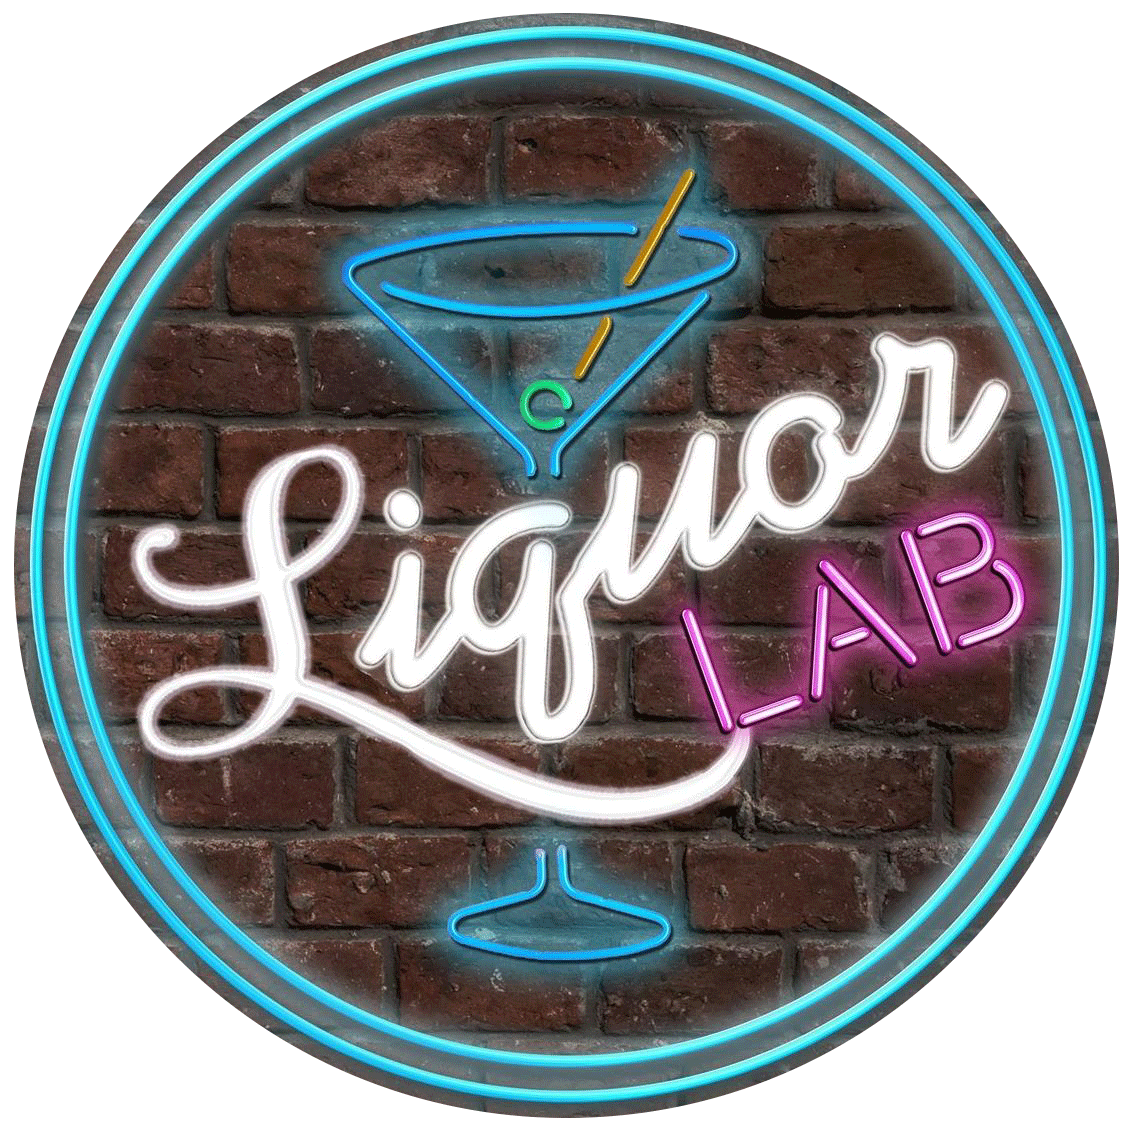 Liquor Lab | Leeds Based Cocktail Party & Event Service.